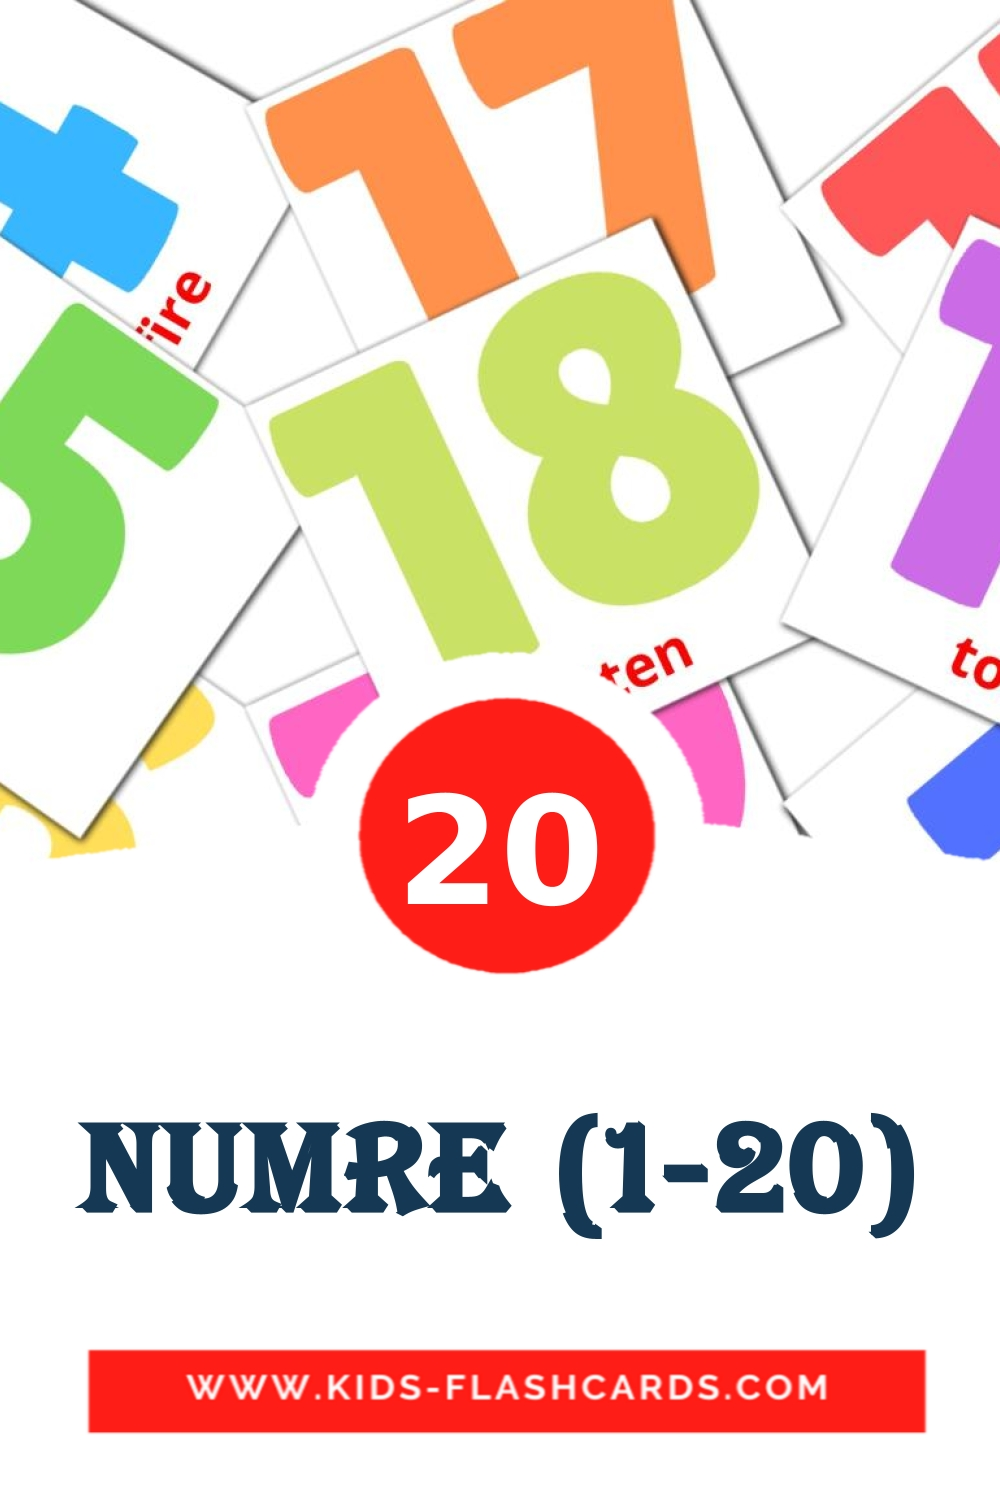 20 Numre (1-20) Picture Cards for Kindergarden in dansk